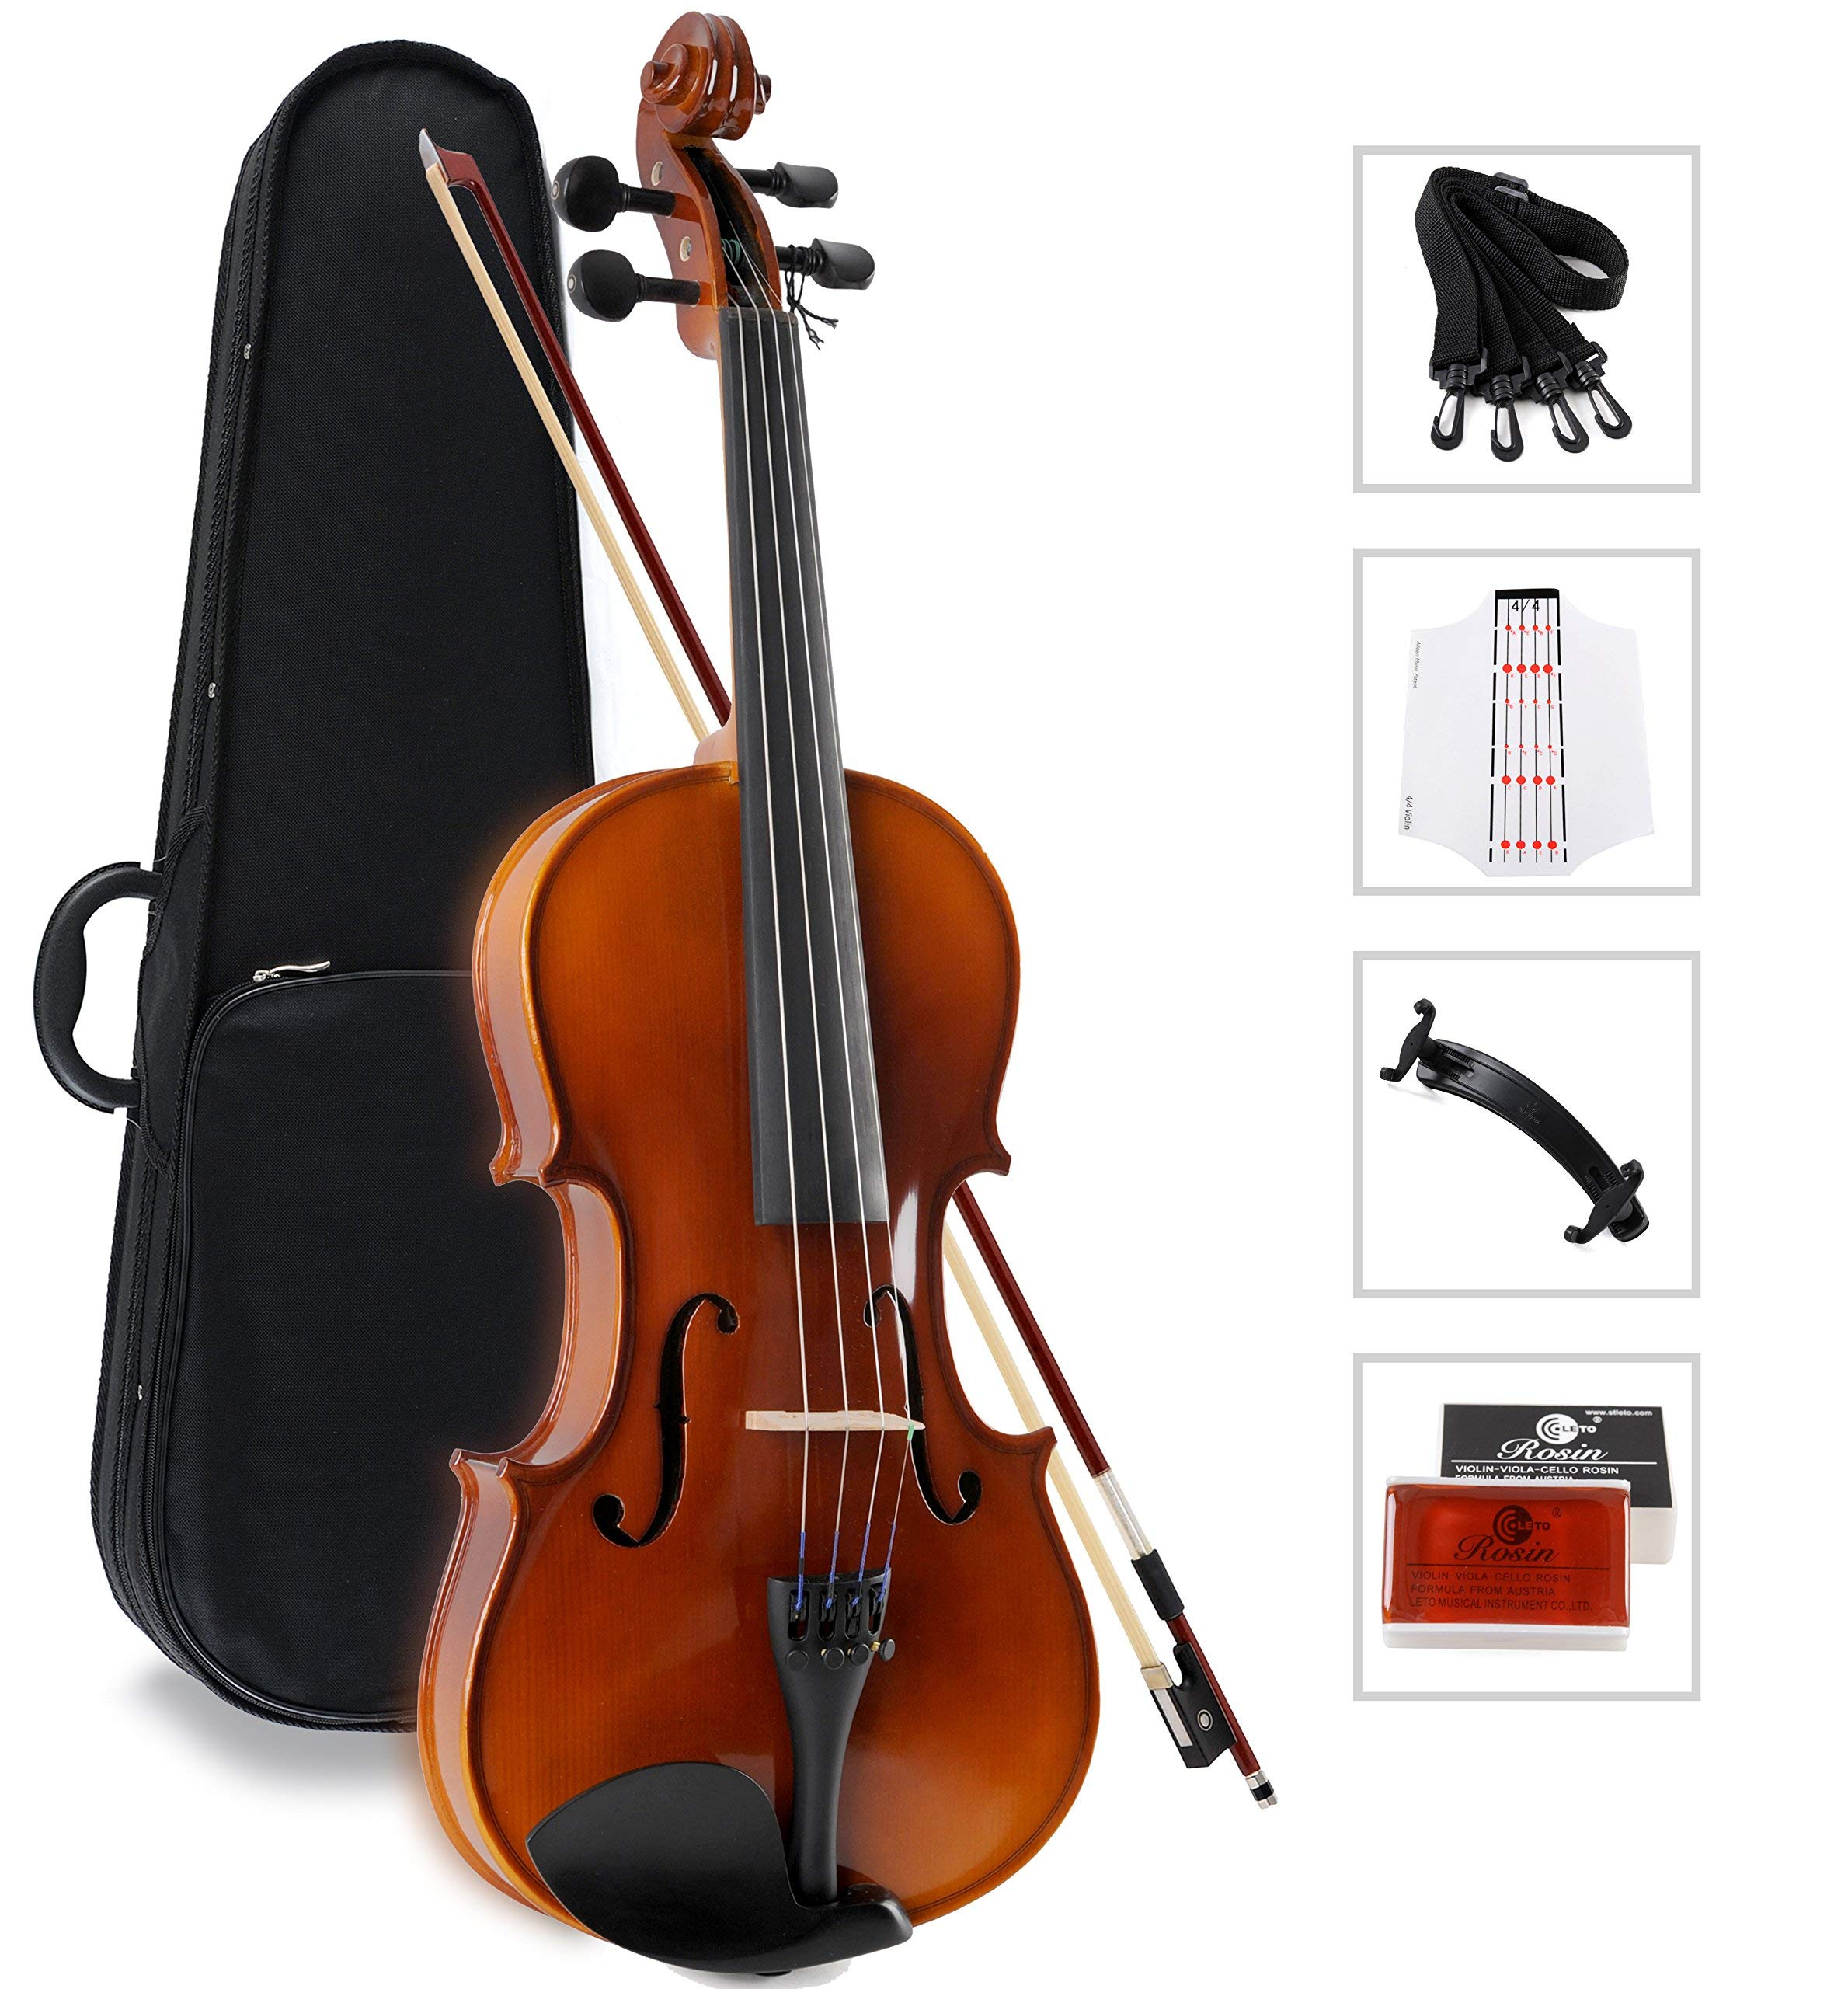 Aileen Solidwood Ebony Kids Students Beginners Violin Rental Shop Preference Outfit with Case, Rosin, Premium Strings, Shoulder Rest, Fingerboard Sticker (1/4) by Aileen